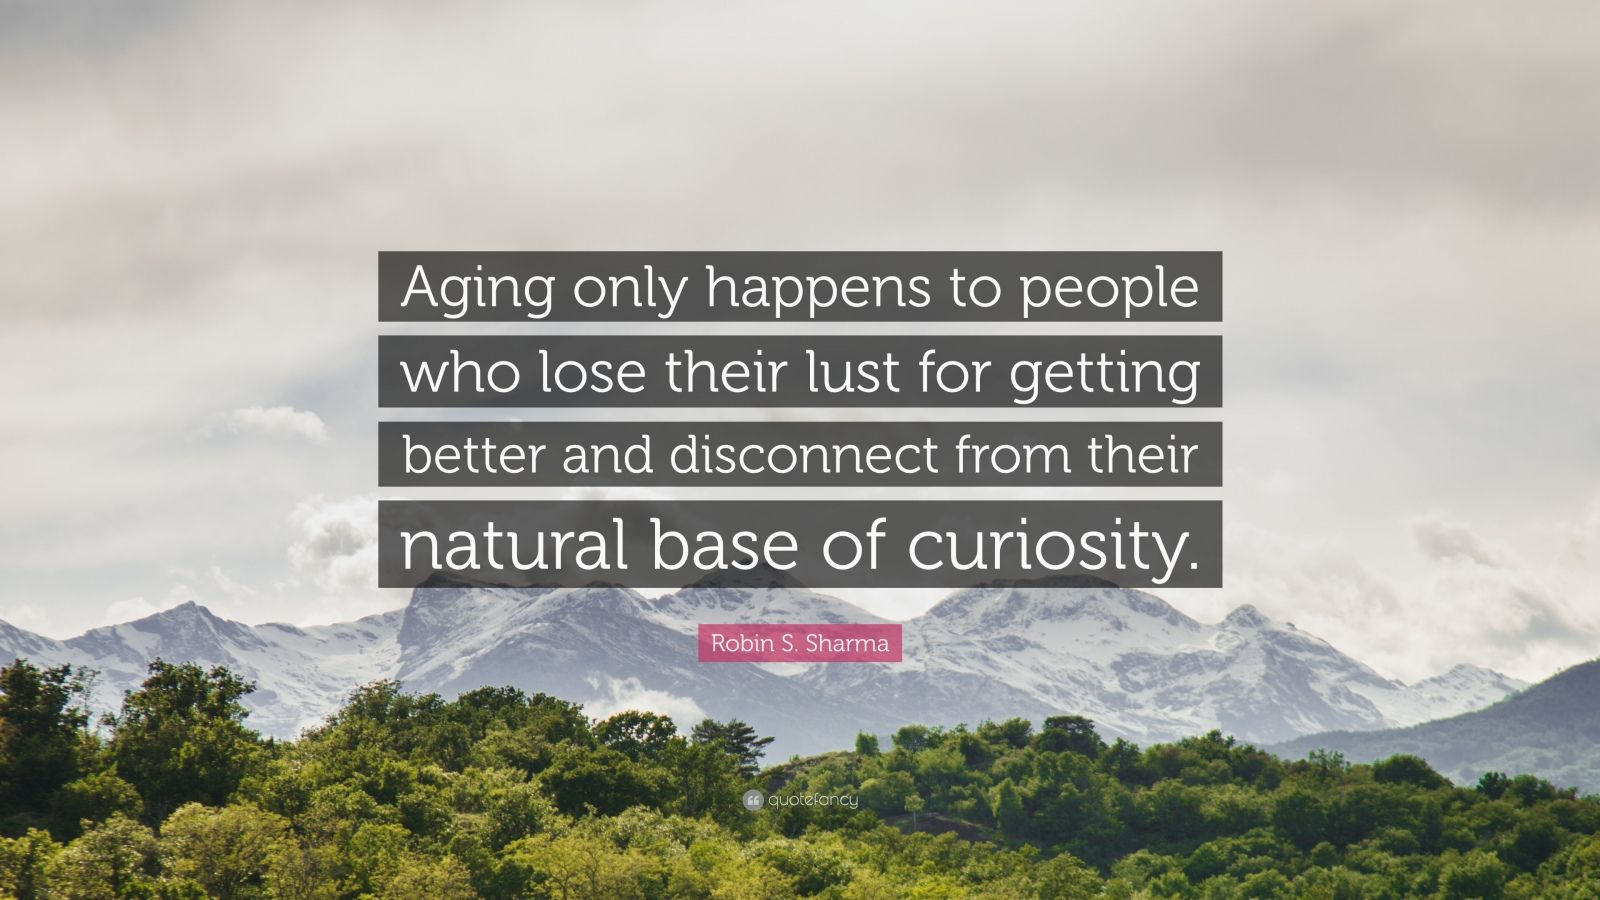 """Robin S. Sharma Quote: """"Aging only happens to people who lose their lust for getting better and disconnect from their natural base of curiosity."""""""